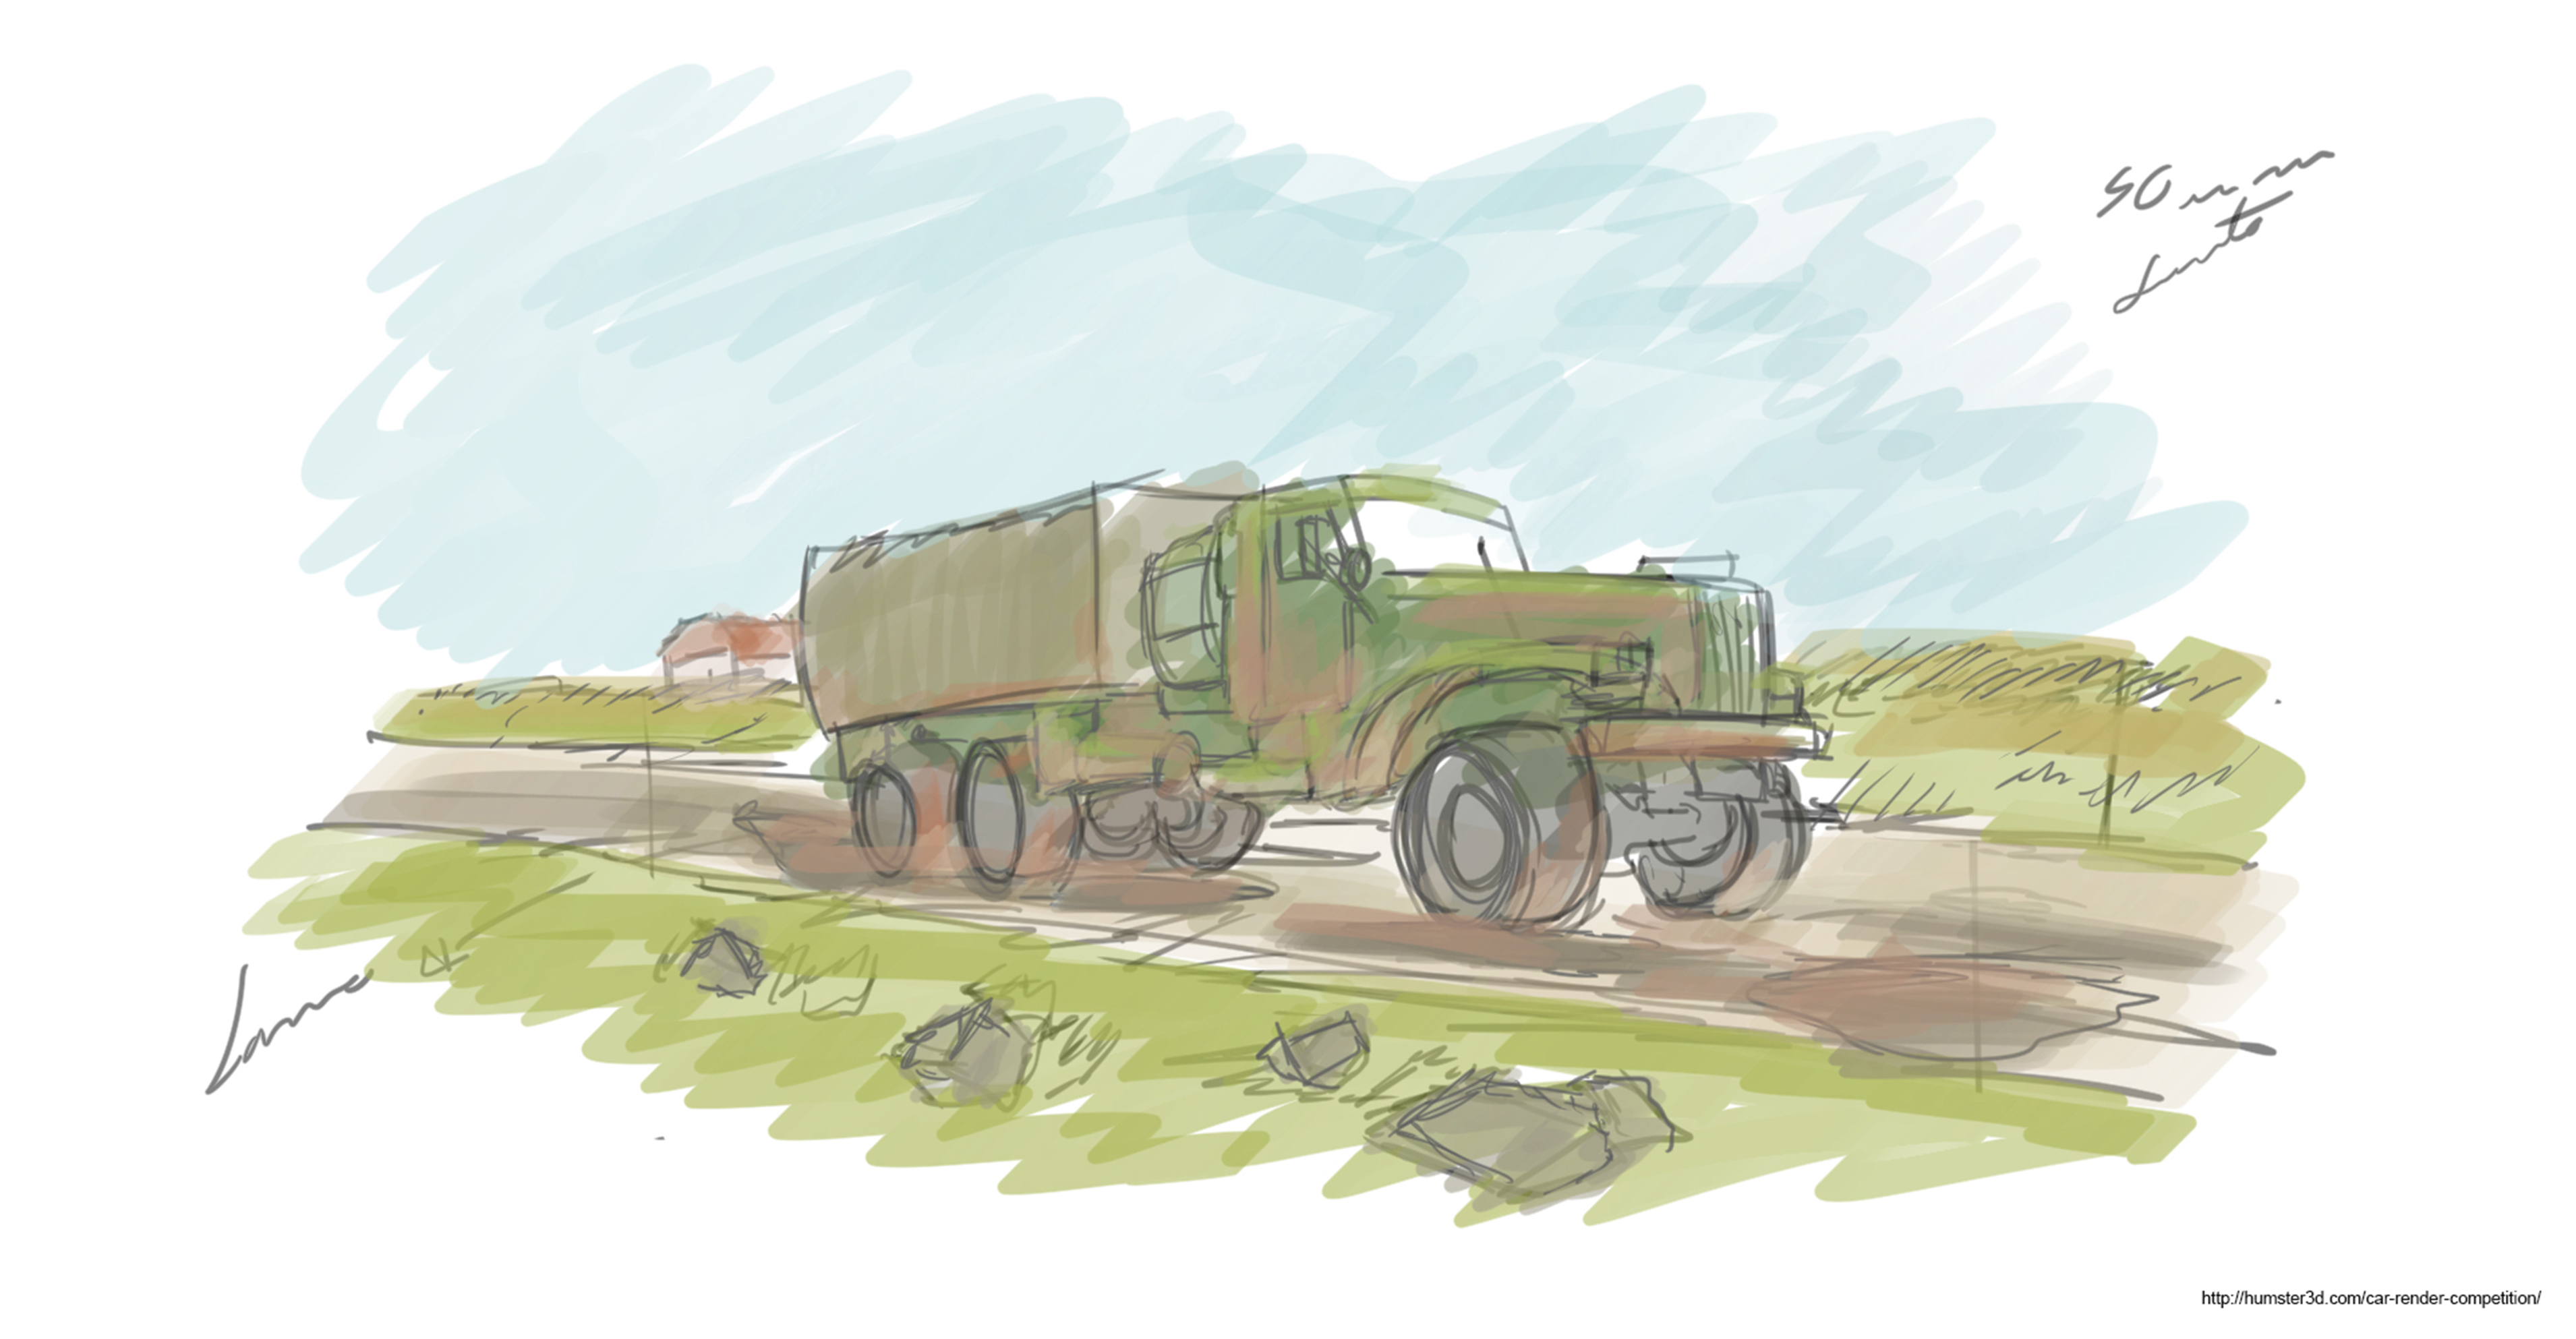 Kraz-255 Concept illustration